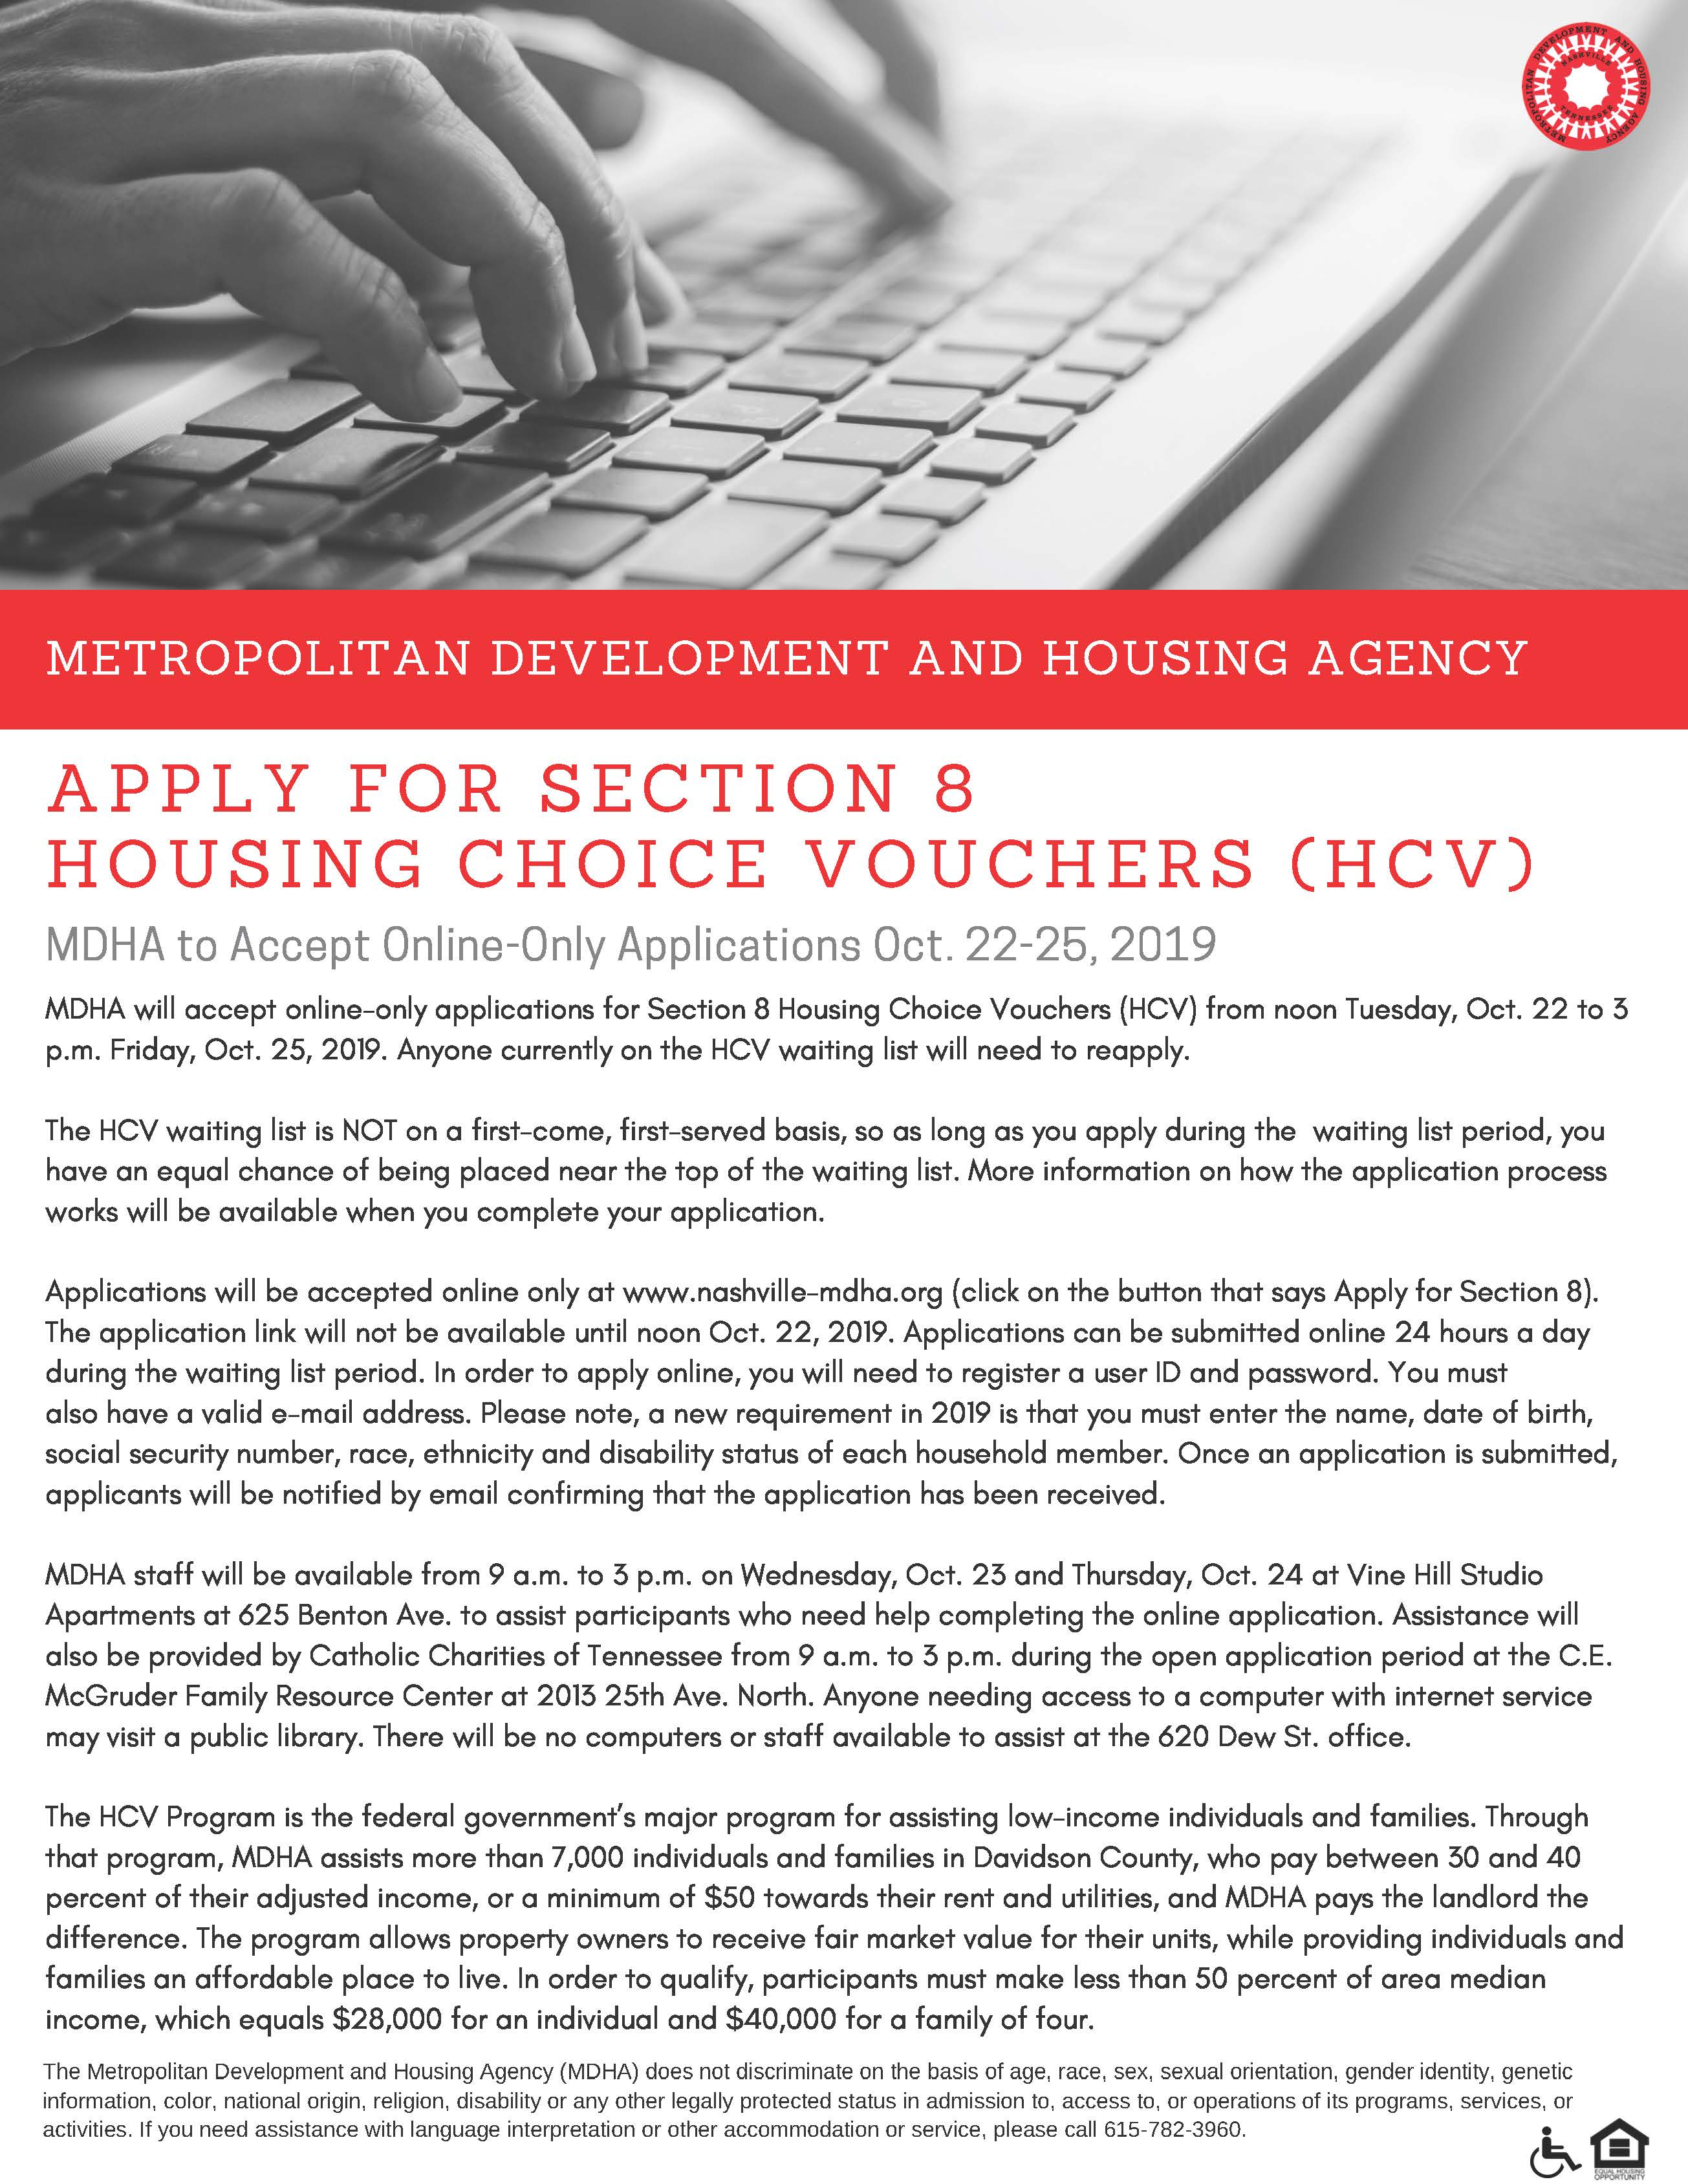 apply-for-section-8-housing-choice-vouchers-10222019-final